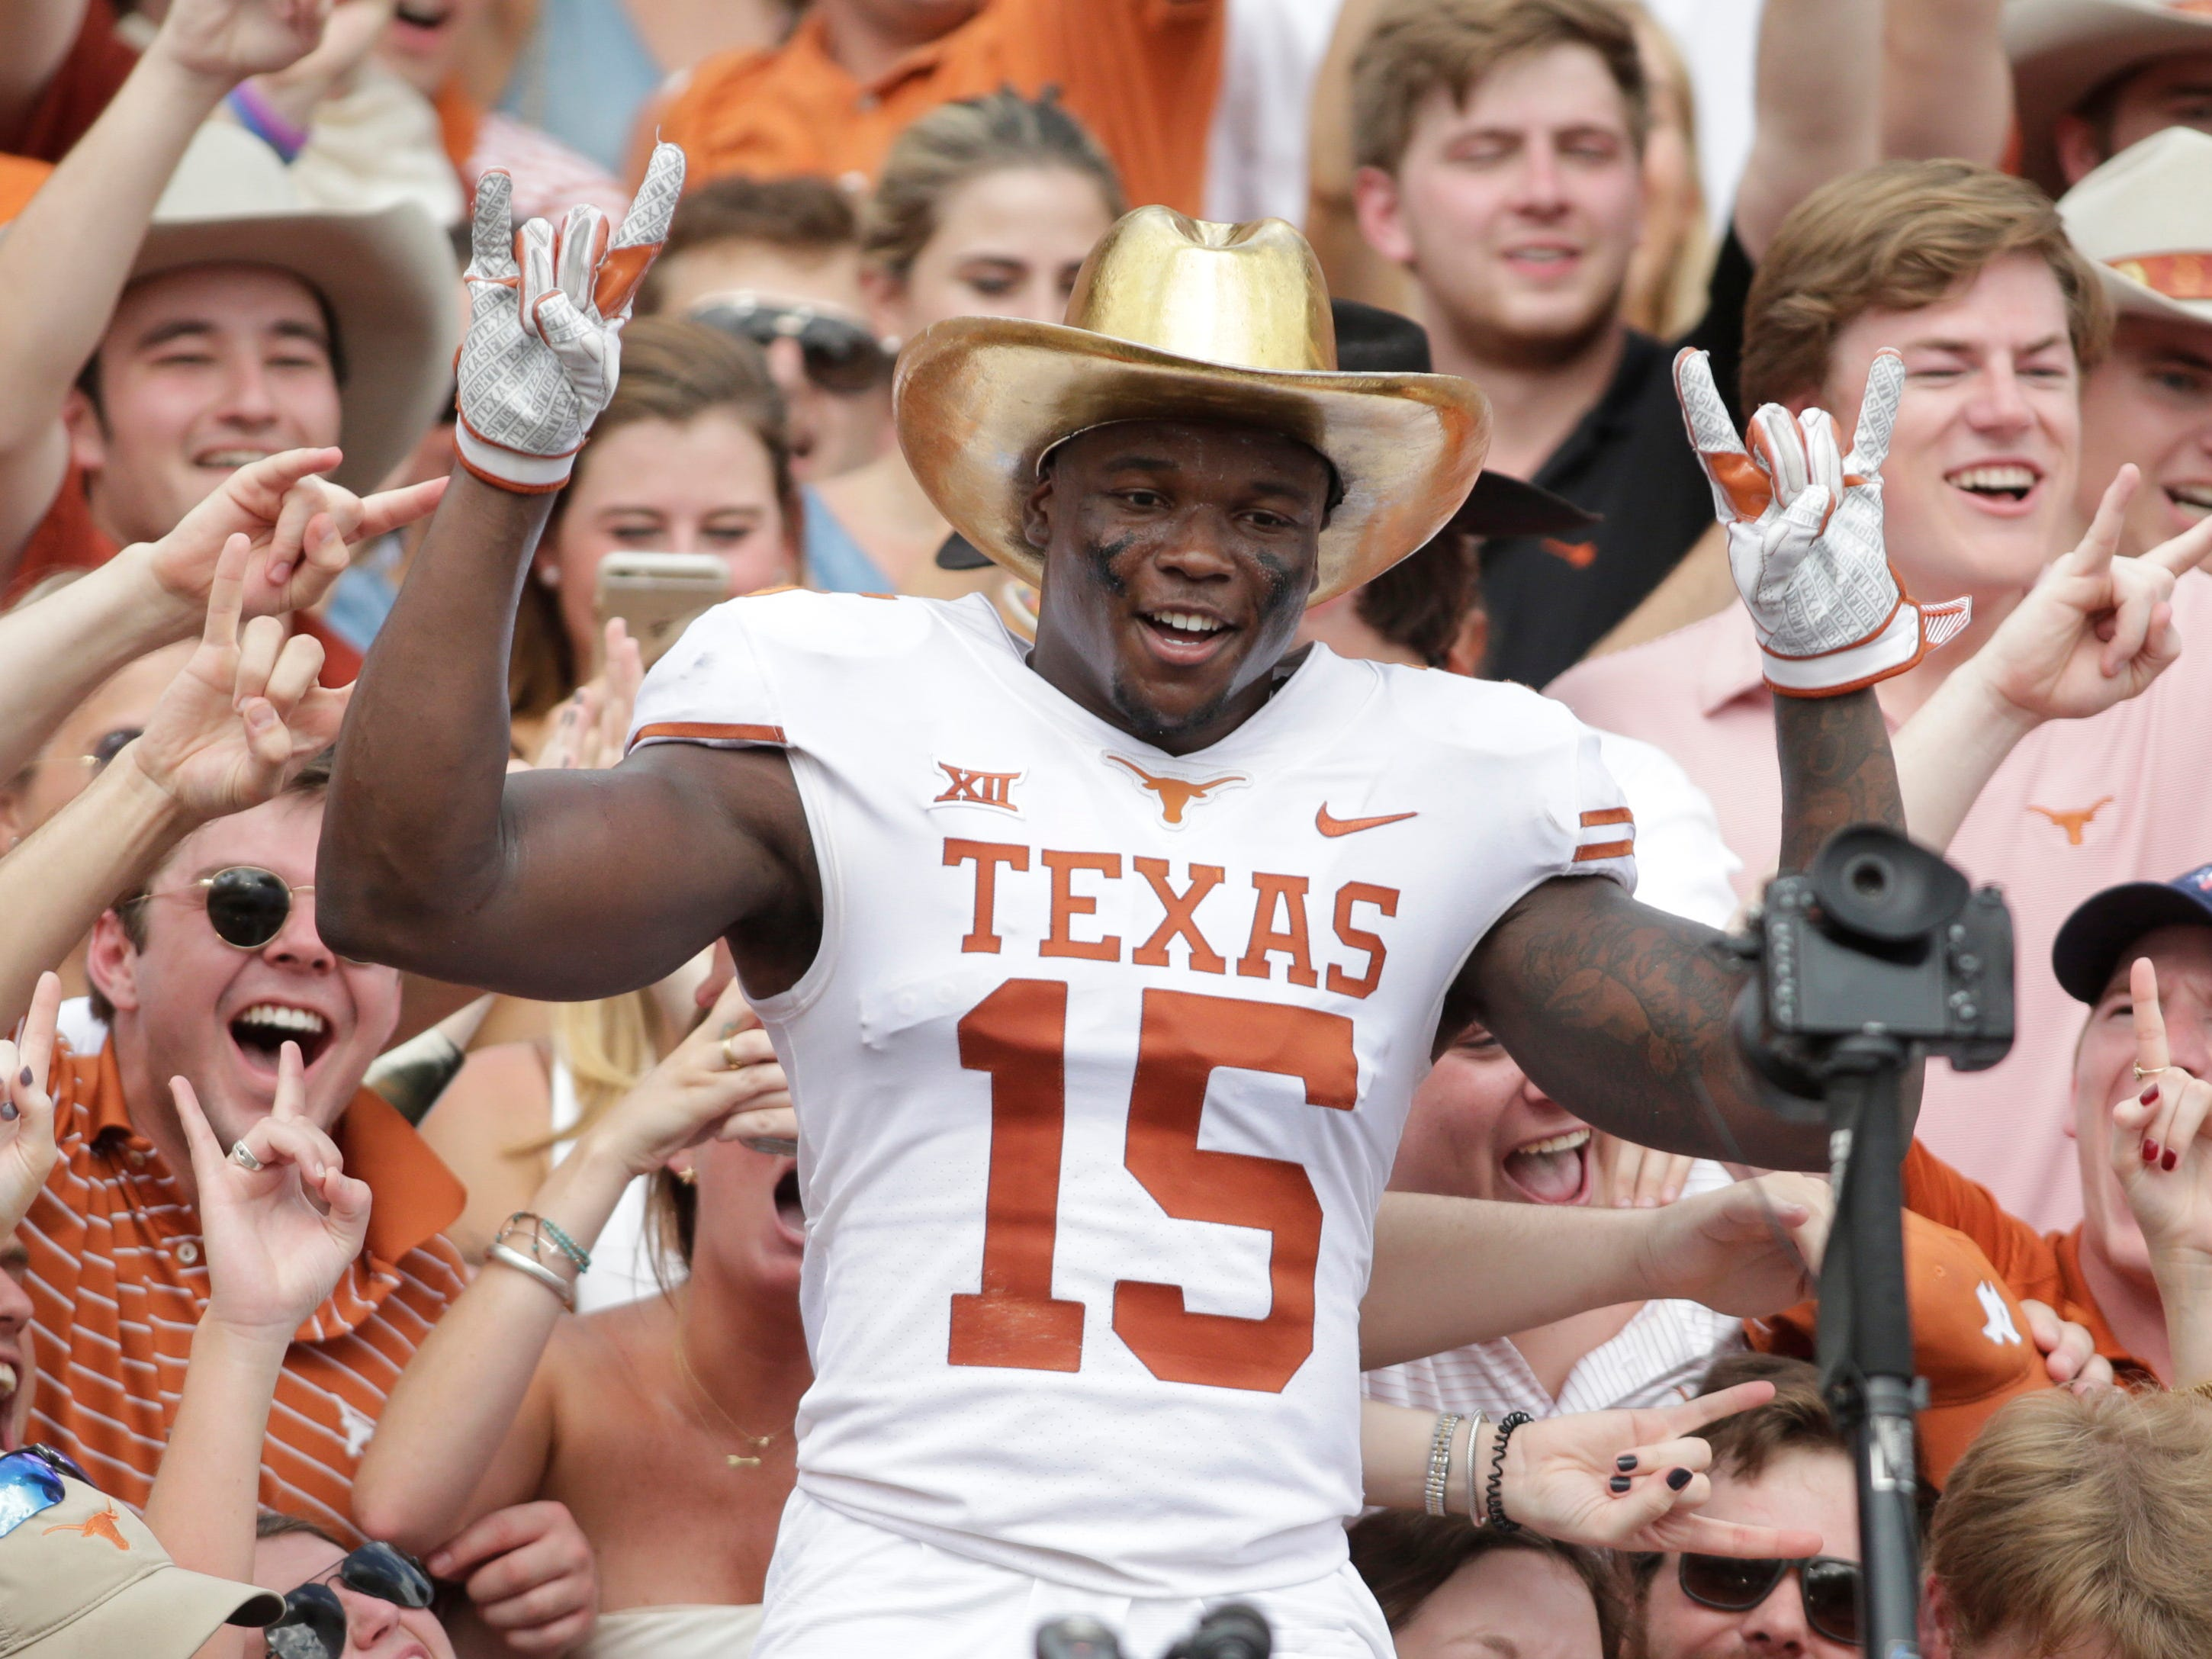 Texas Longhorns defensive back Chris Brown celebrates in the crowd with the Golden Hat after a game against the Oklahoma Sooners at the Cotton Bowl.